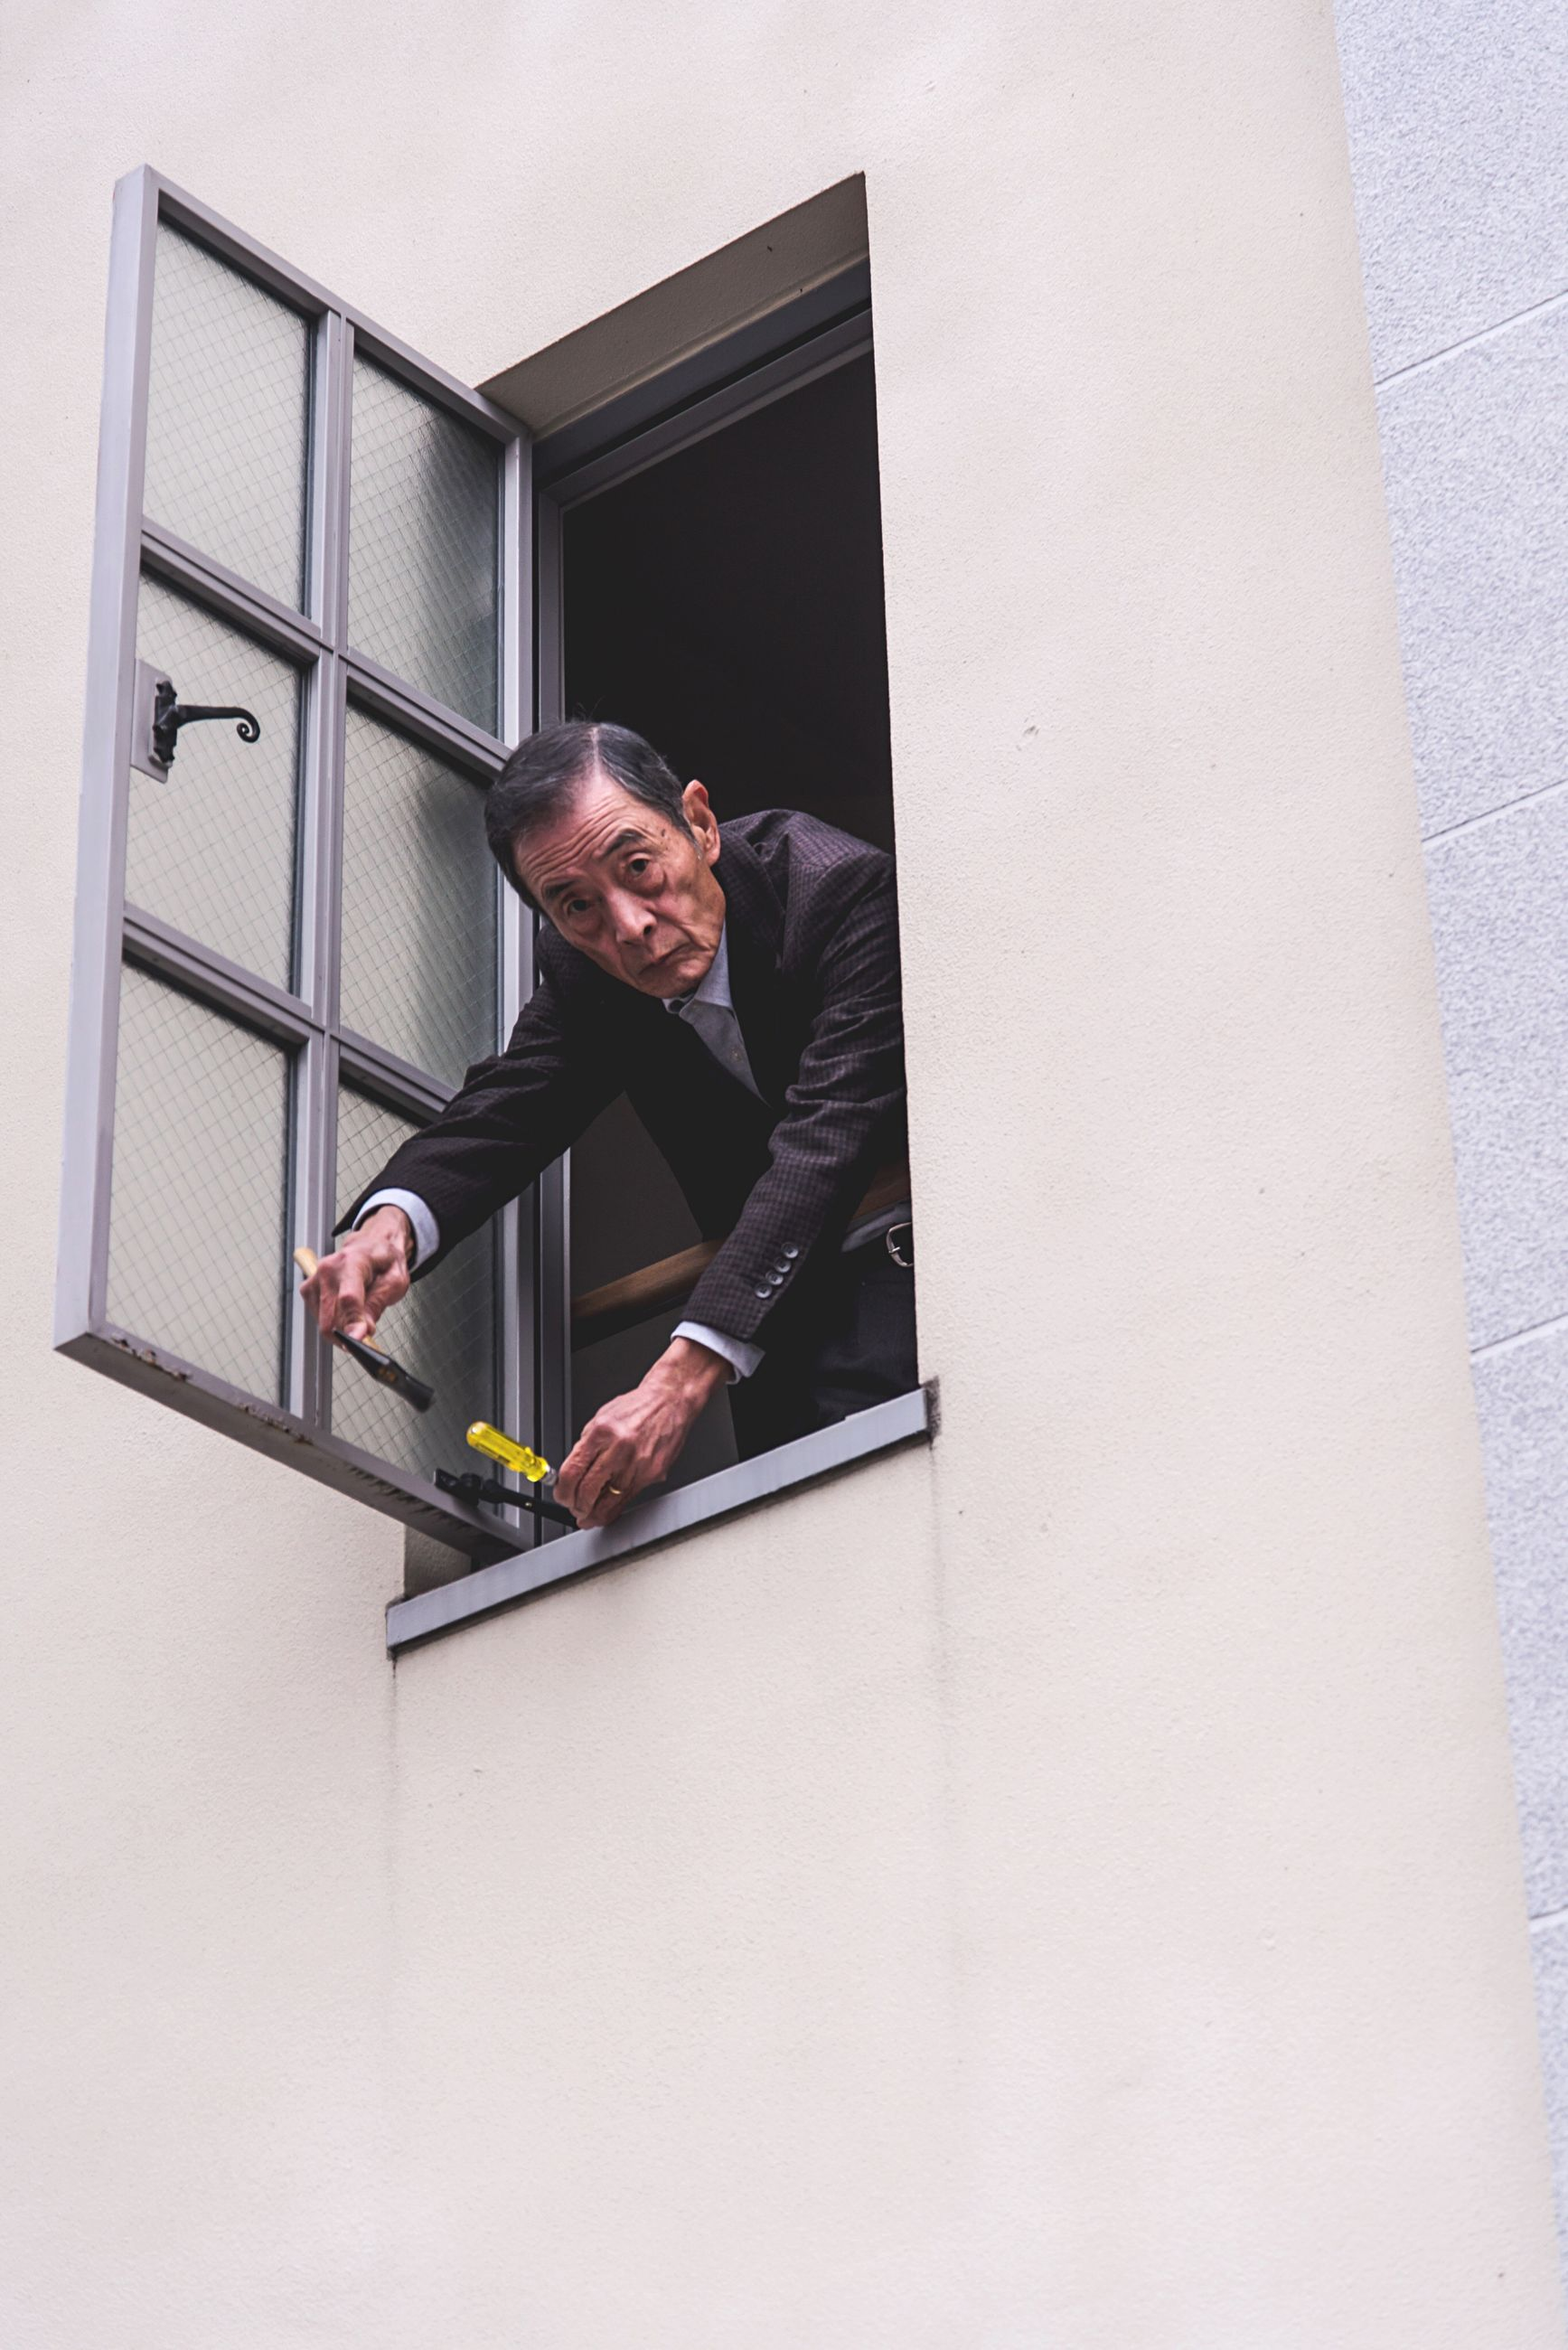 MAN WORKING IN OFFICE BUILDING